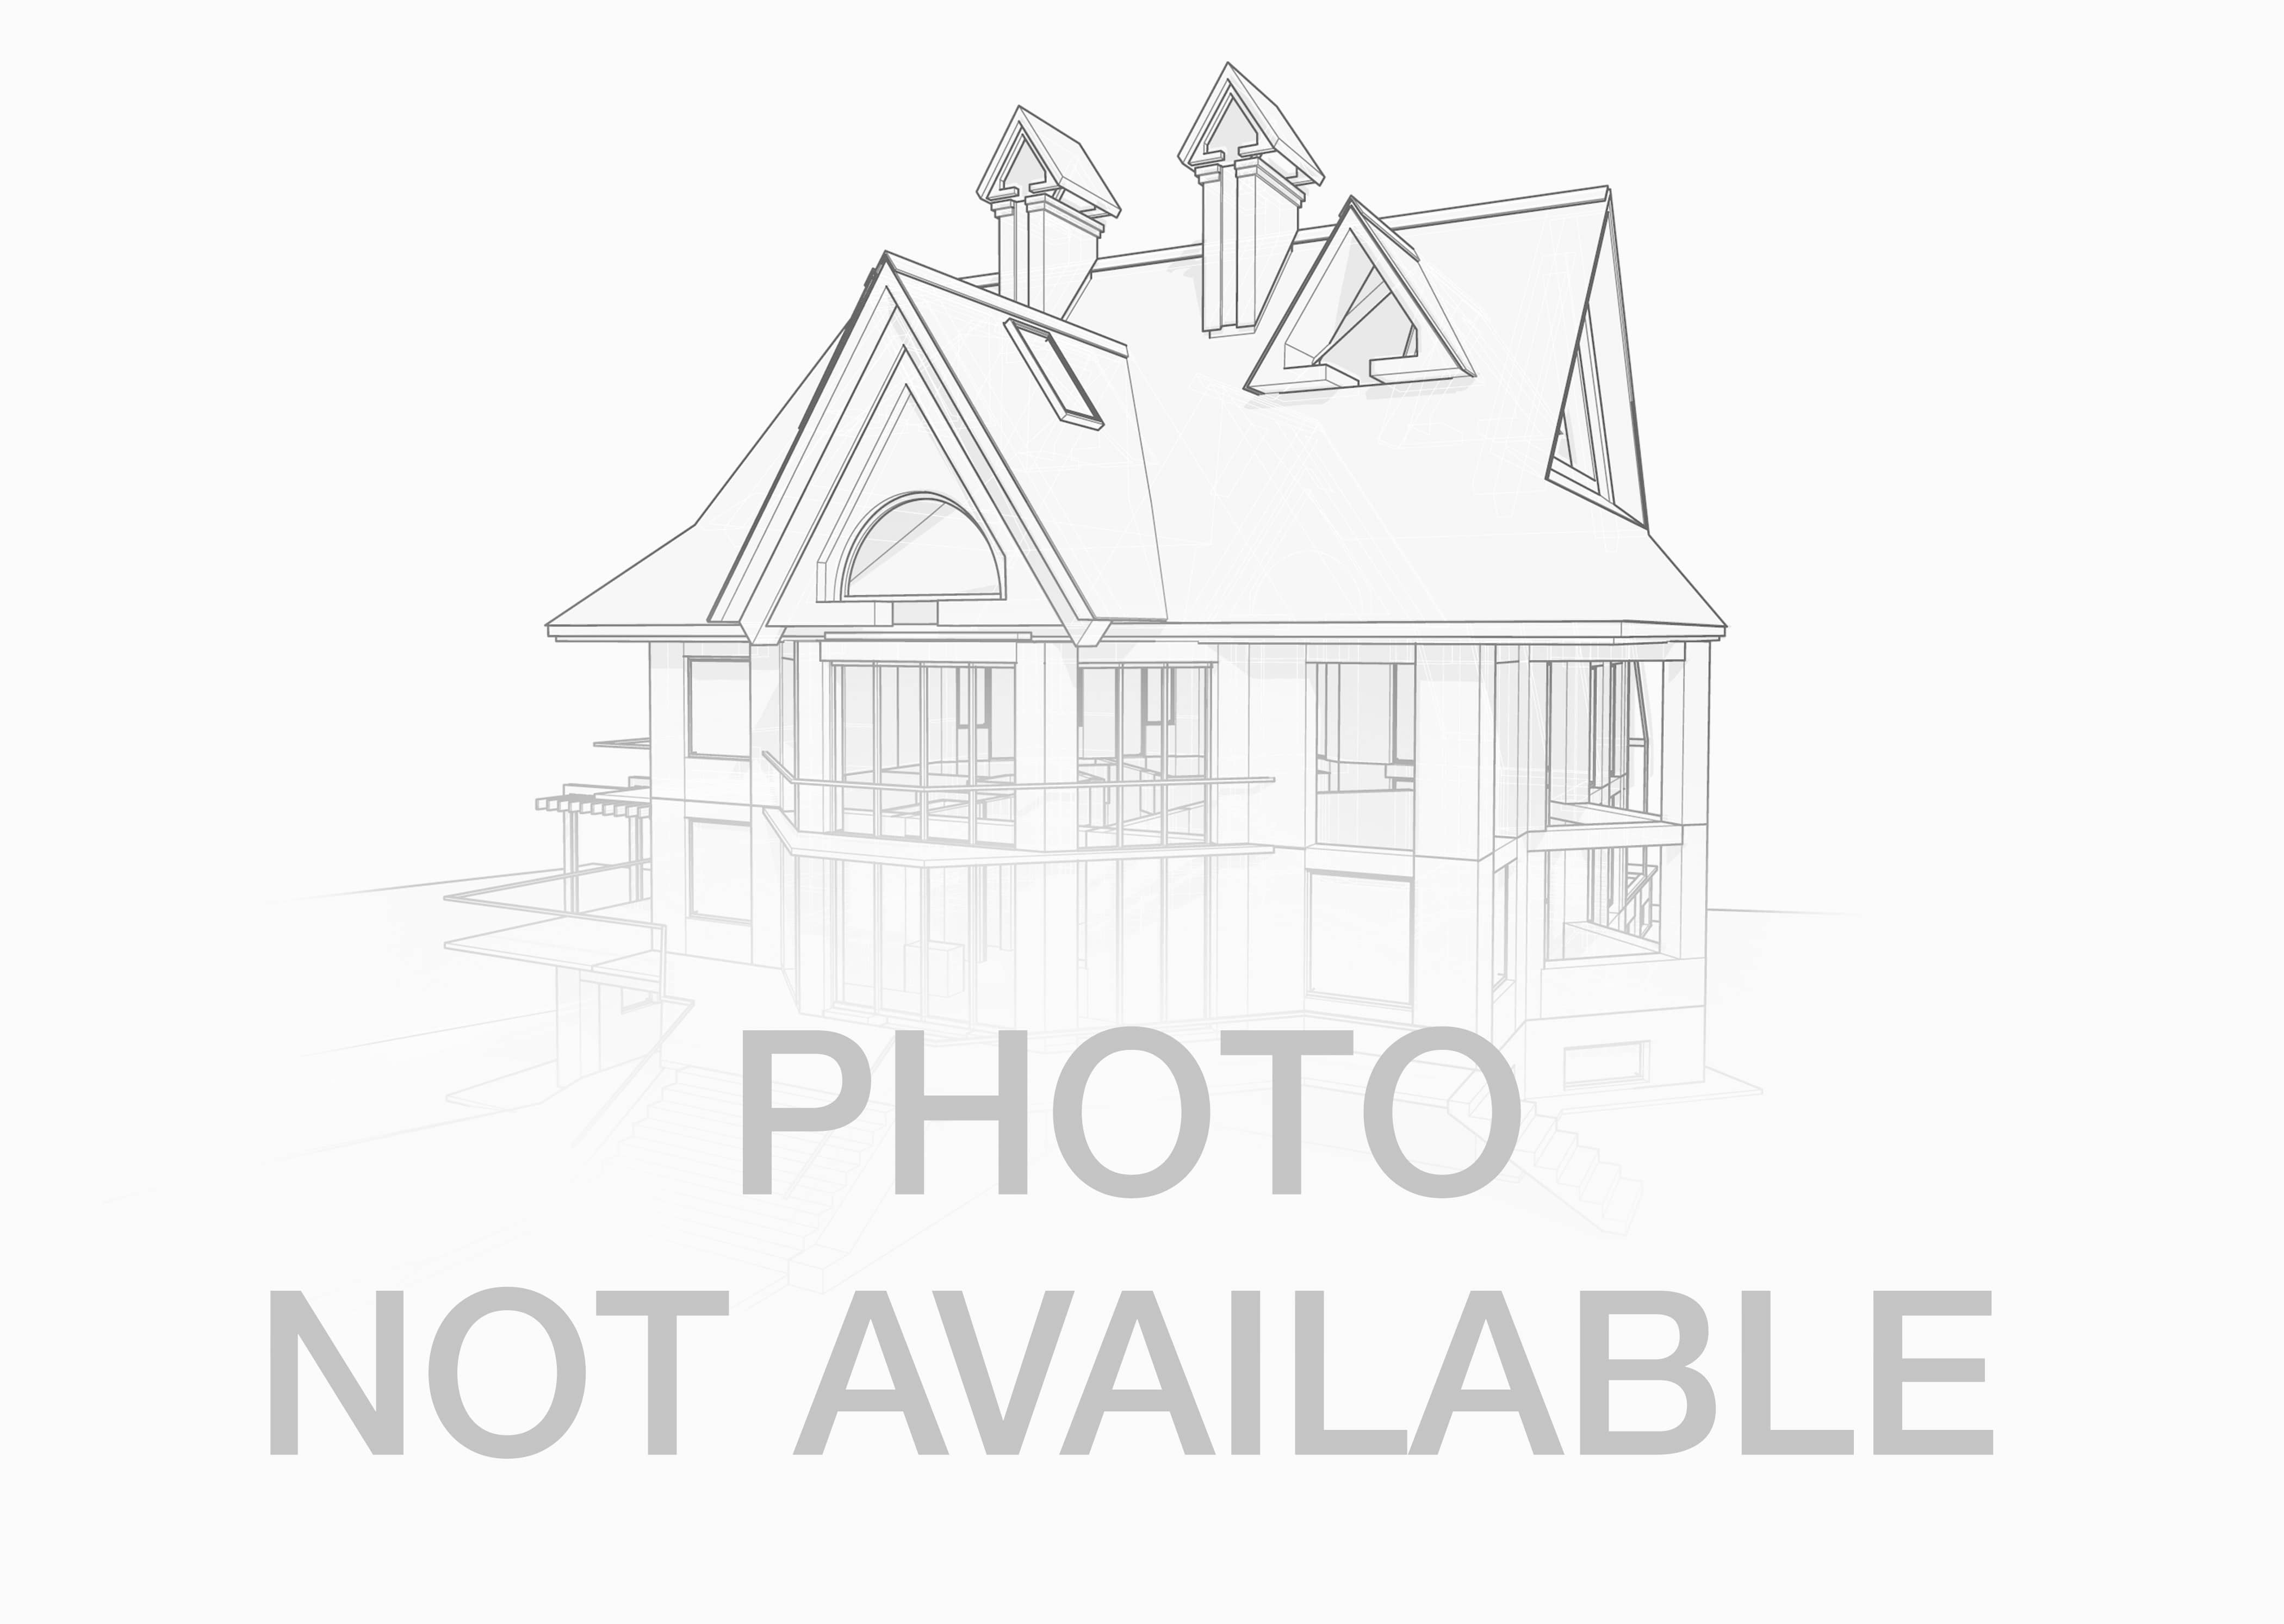 West Property For Sale Prince Georges County Md